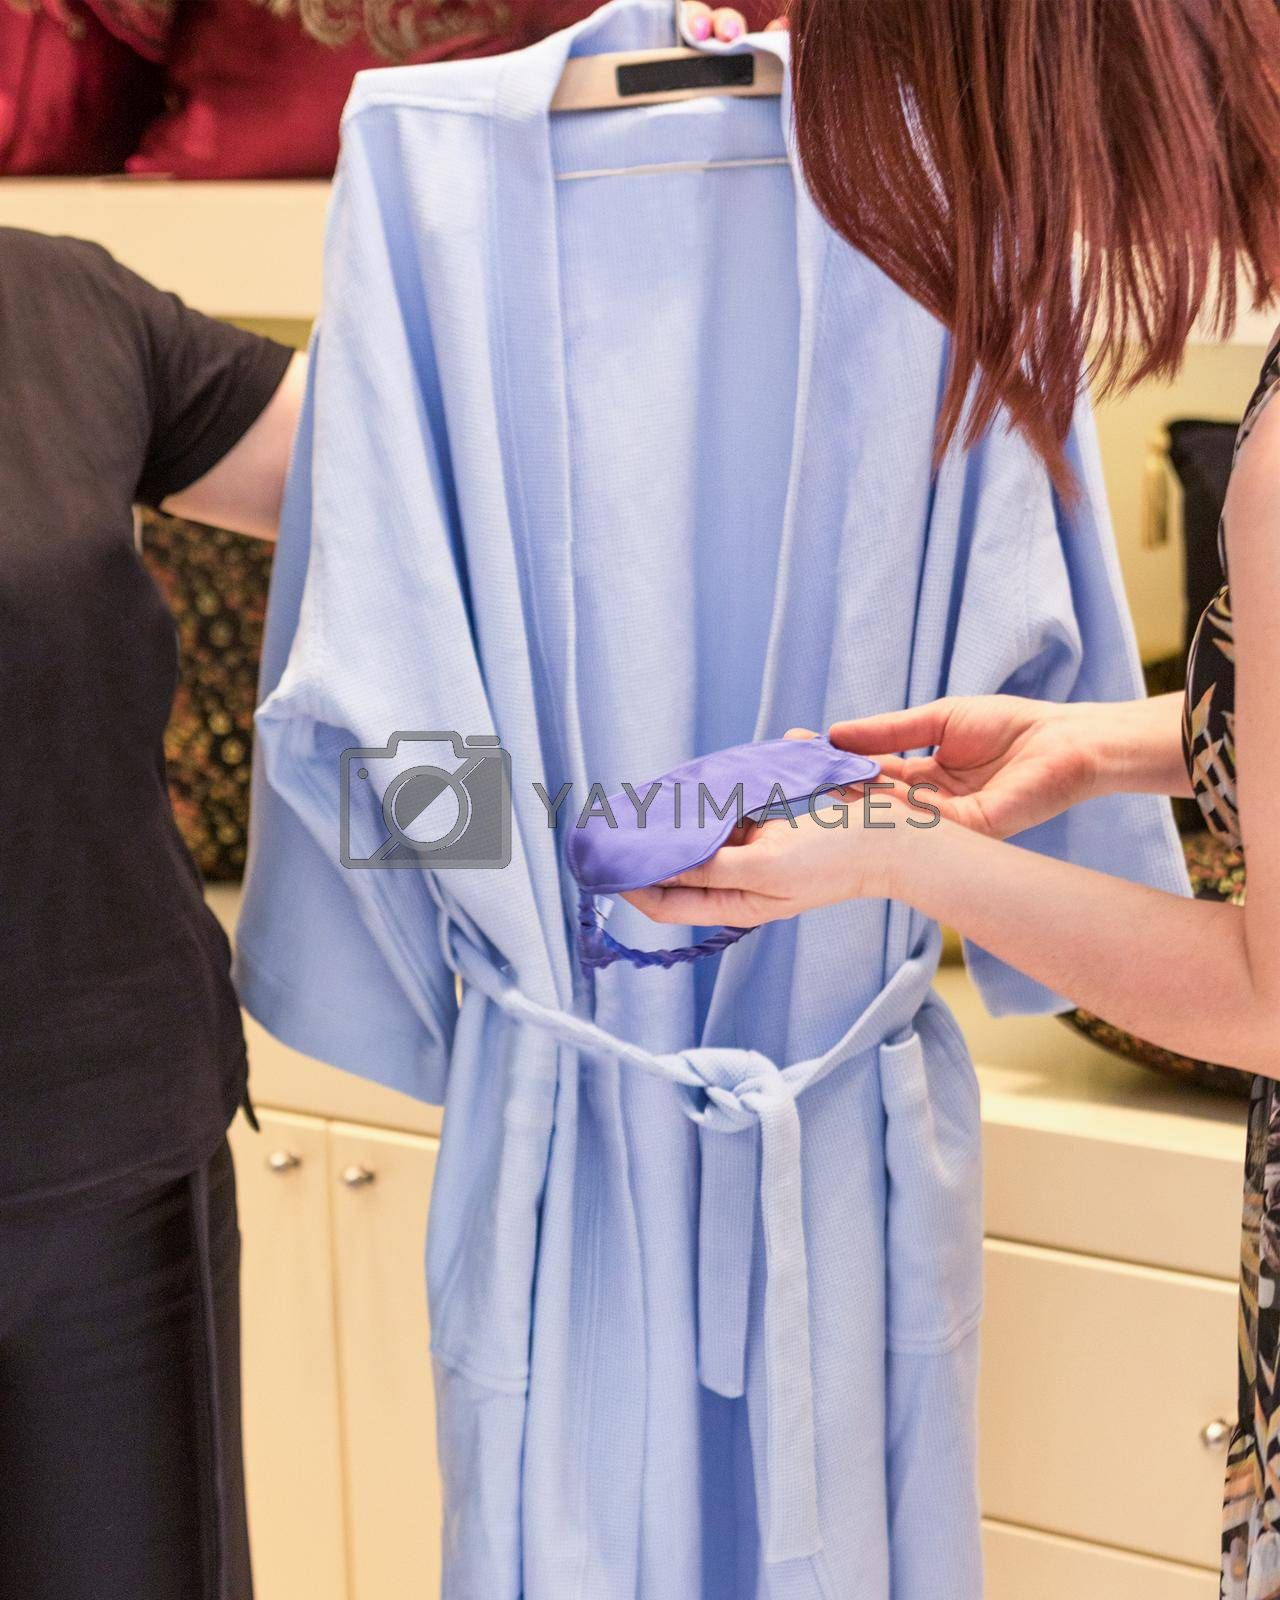 Woman holding a new robe and eye cover at the store